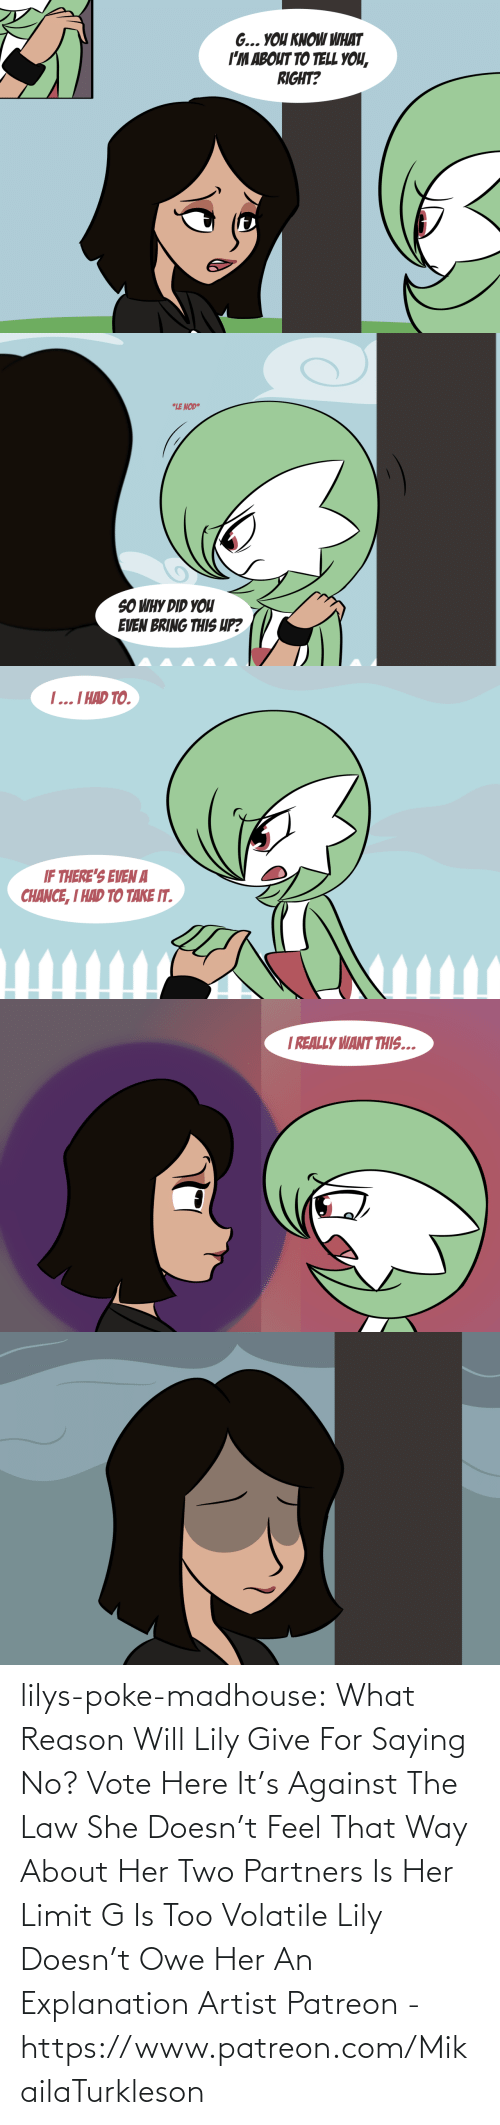 Tumblr, Blog, and Karaoke: lilys-poke-madhouse: What Reason Will Lily Give For Saying No? Vote Here It's Against The Law   She Doesn't Feel That Way About Her     Two Partners Is Her Limit     G Is Too Volatile    Lily Doesn't Owe Her An Explanation     Artist Patreon - https://www.patreon.com/MikailaTurkleson